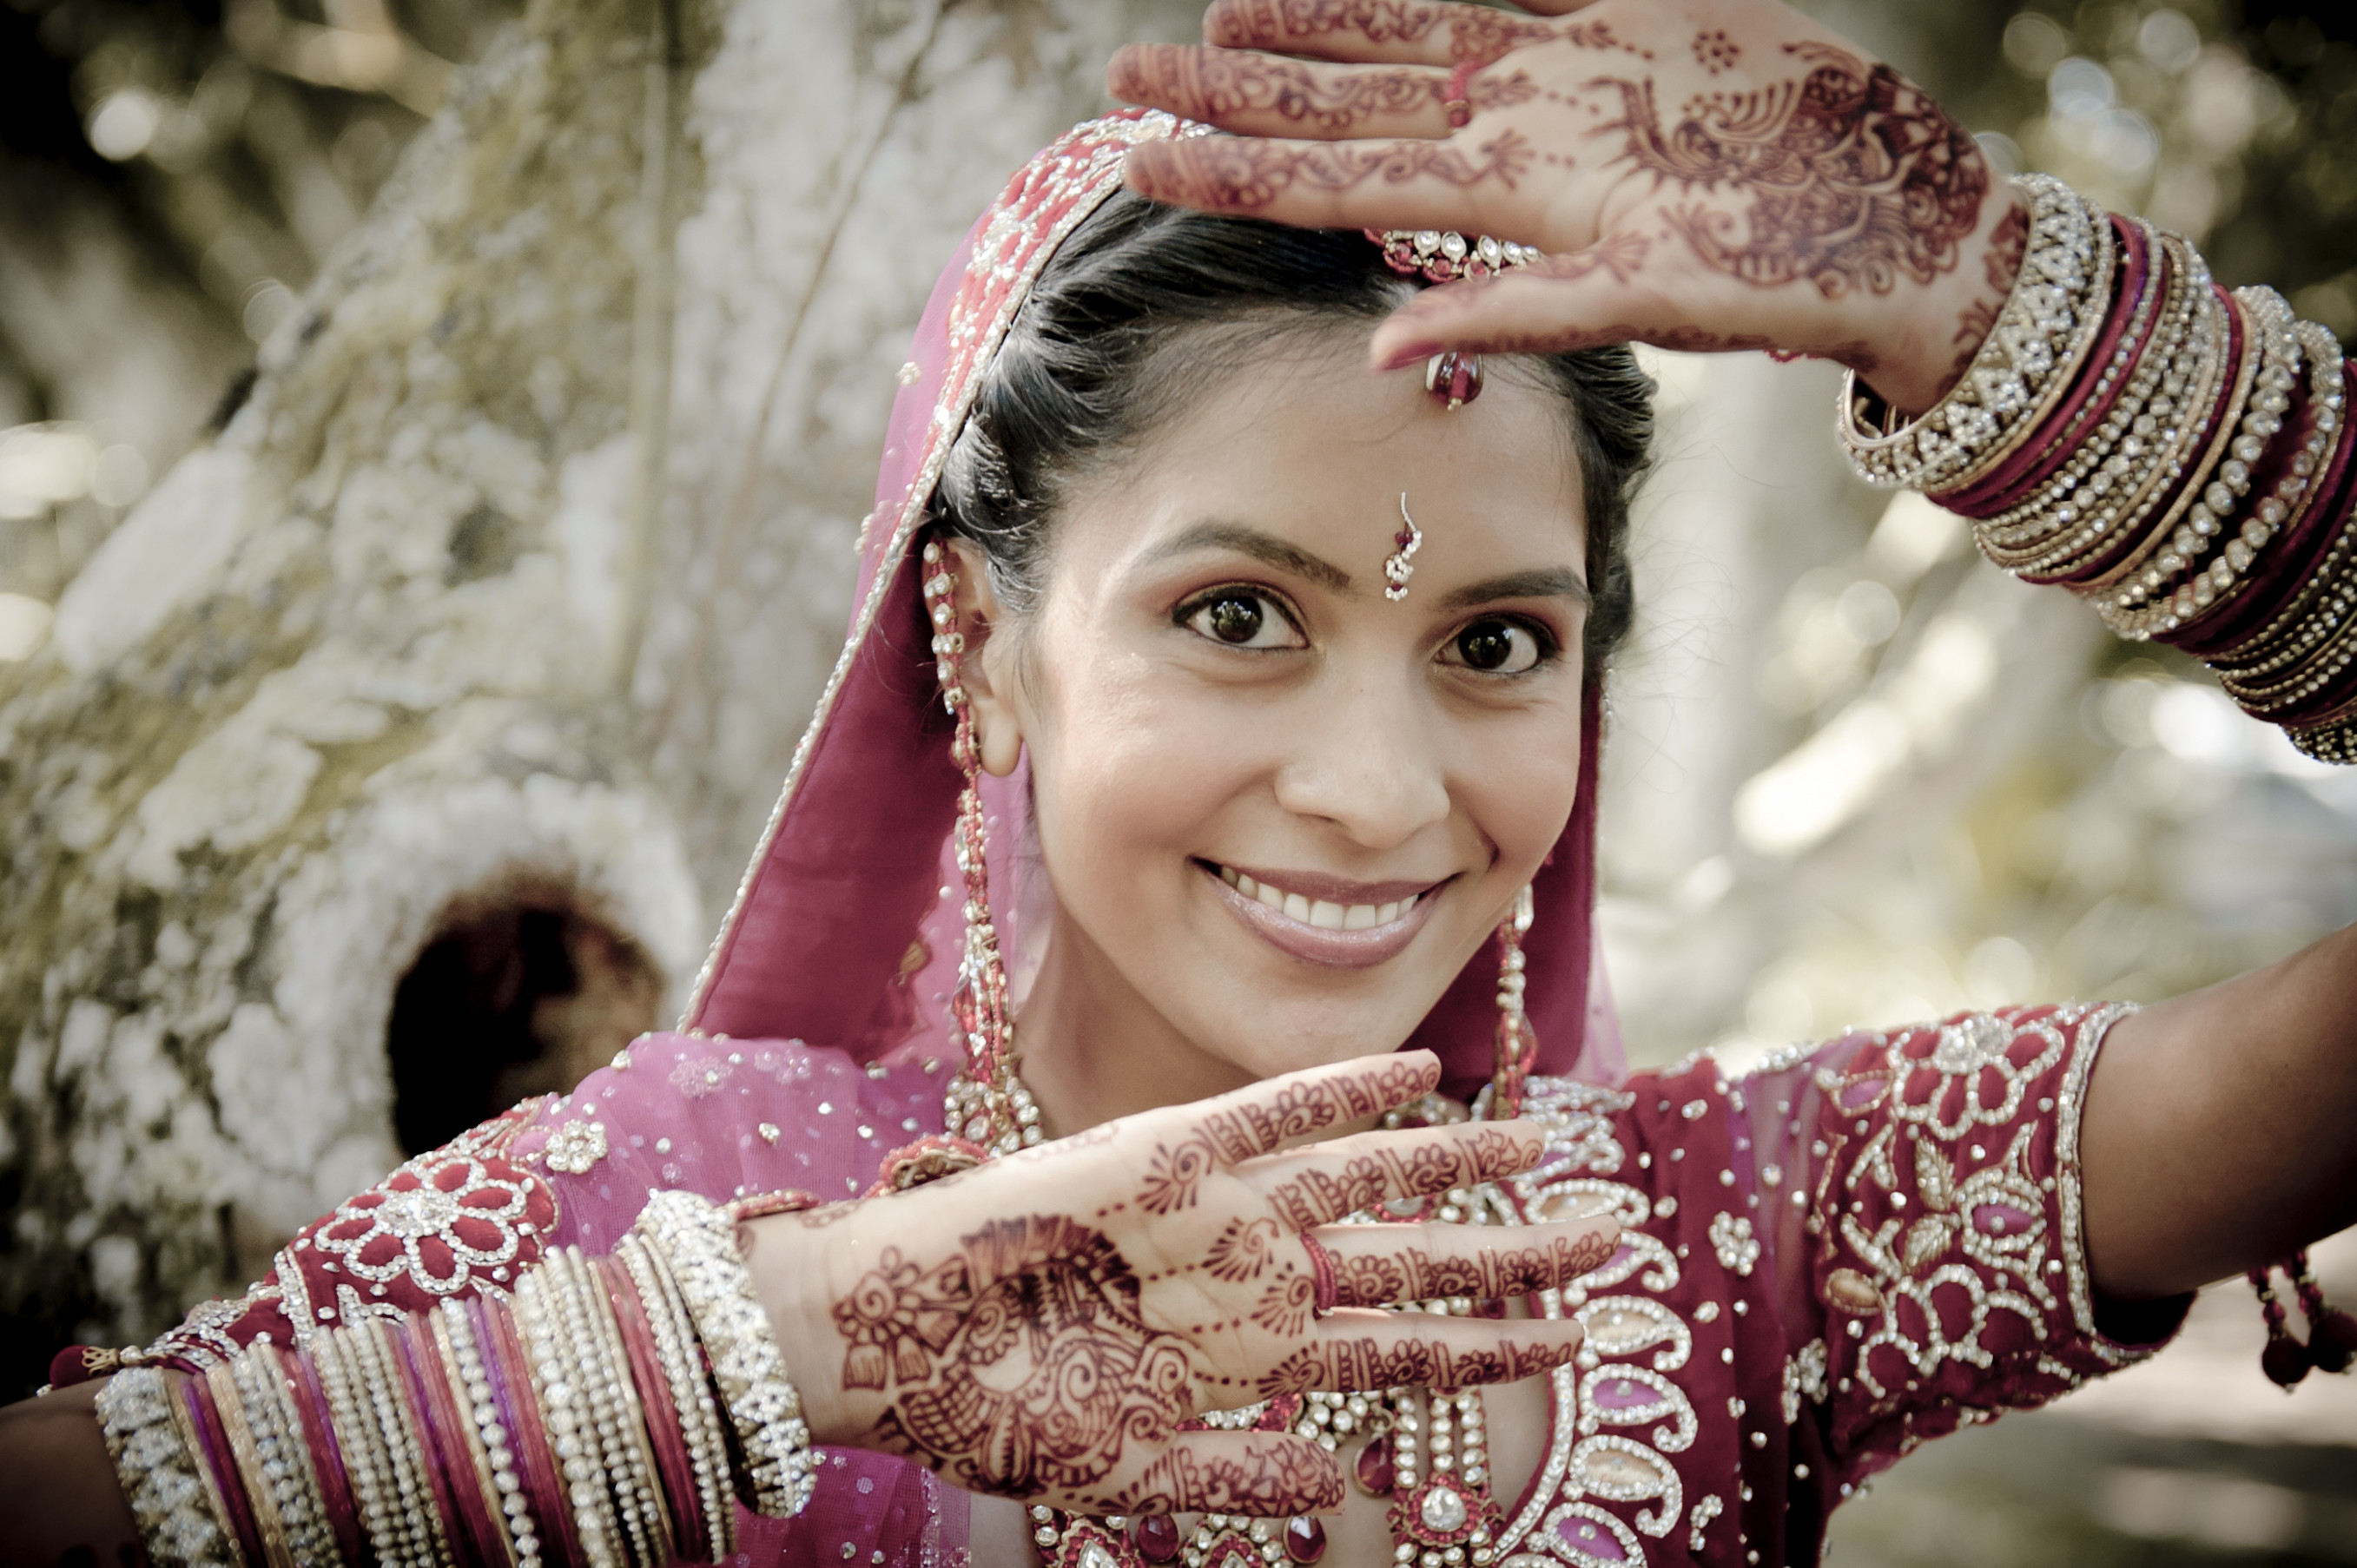 Indian wedding music - Articles - Easy Weddings